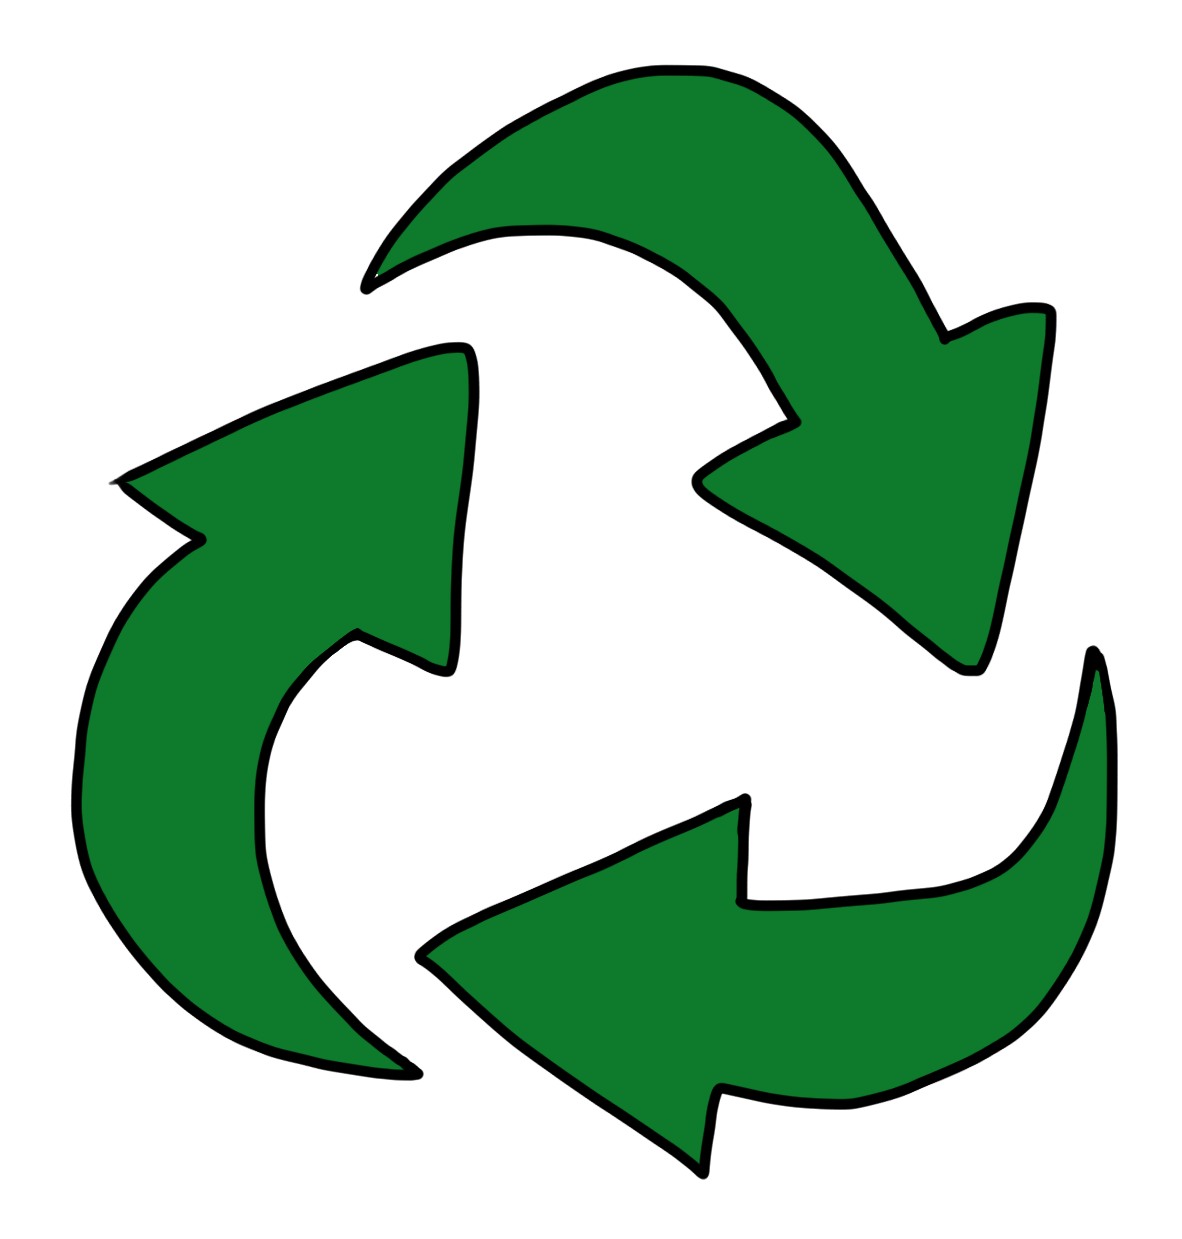 Pictures Of Recycling Symbols